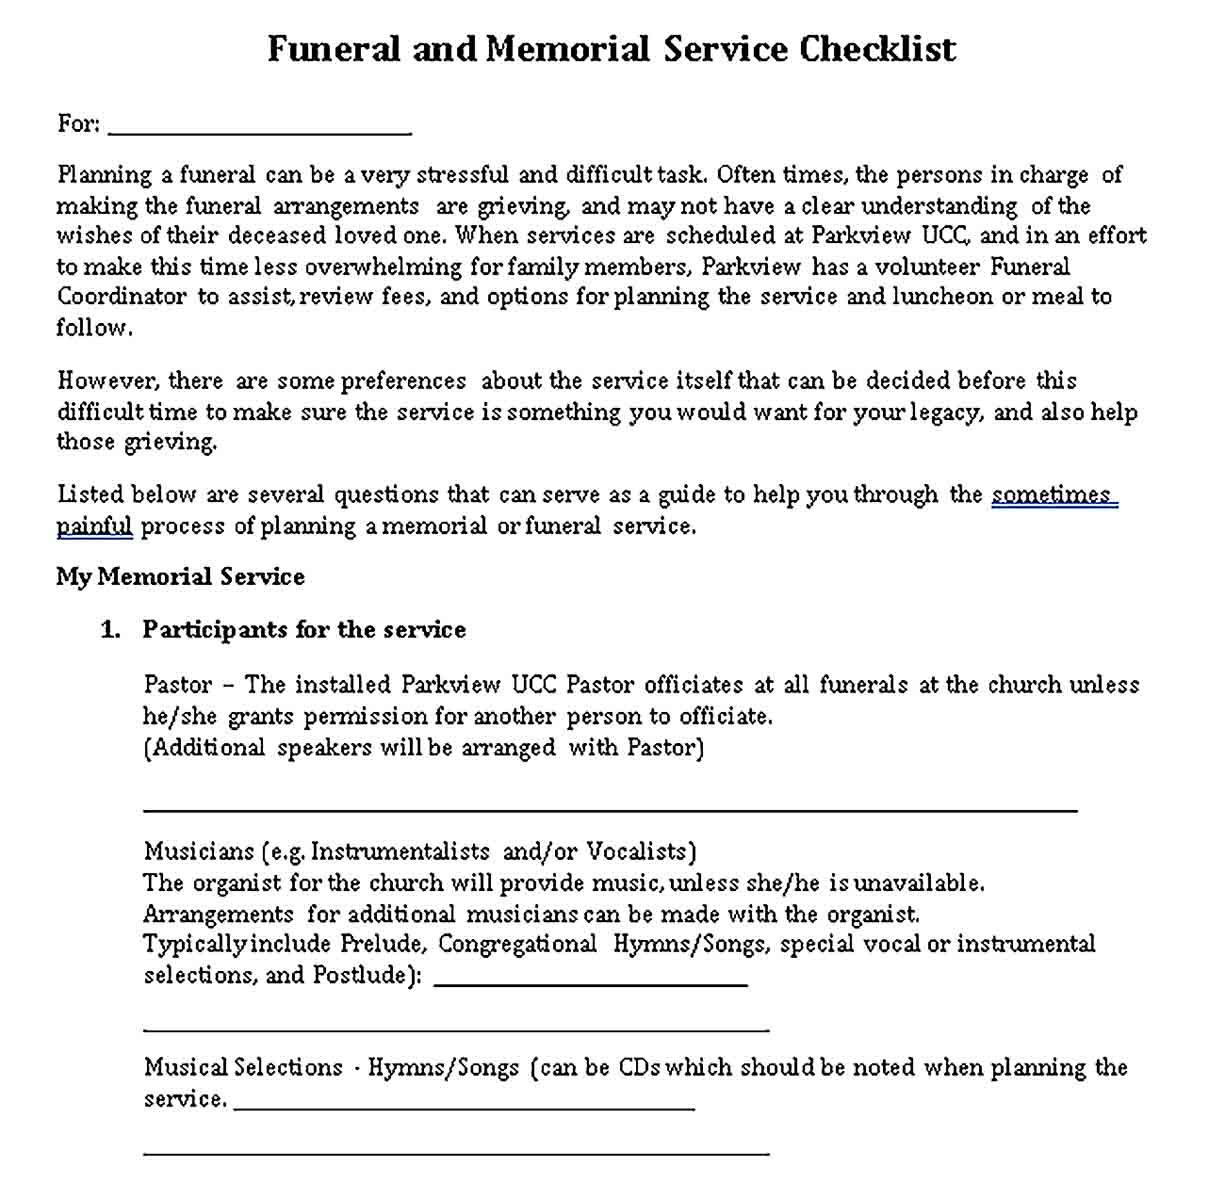 Sample Funeral and Memorial Service Checklist Funeral